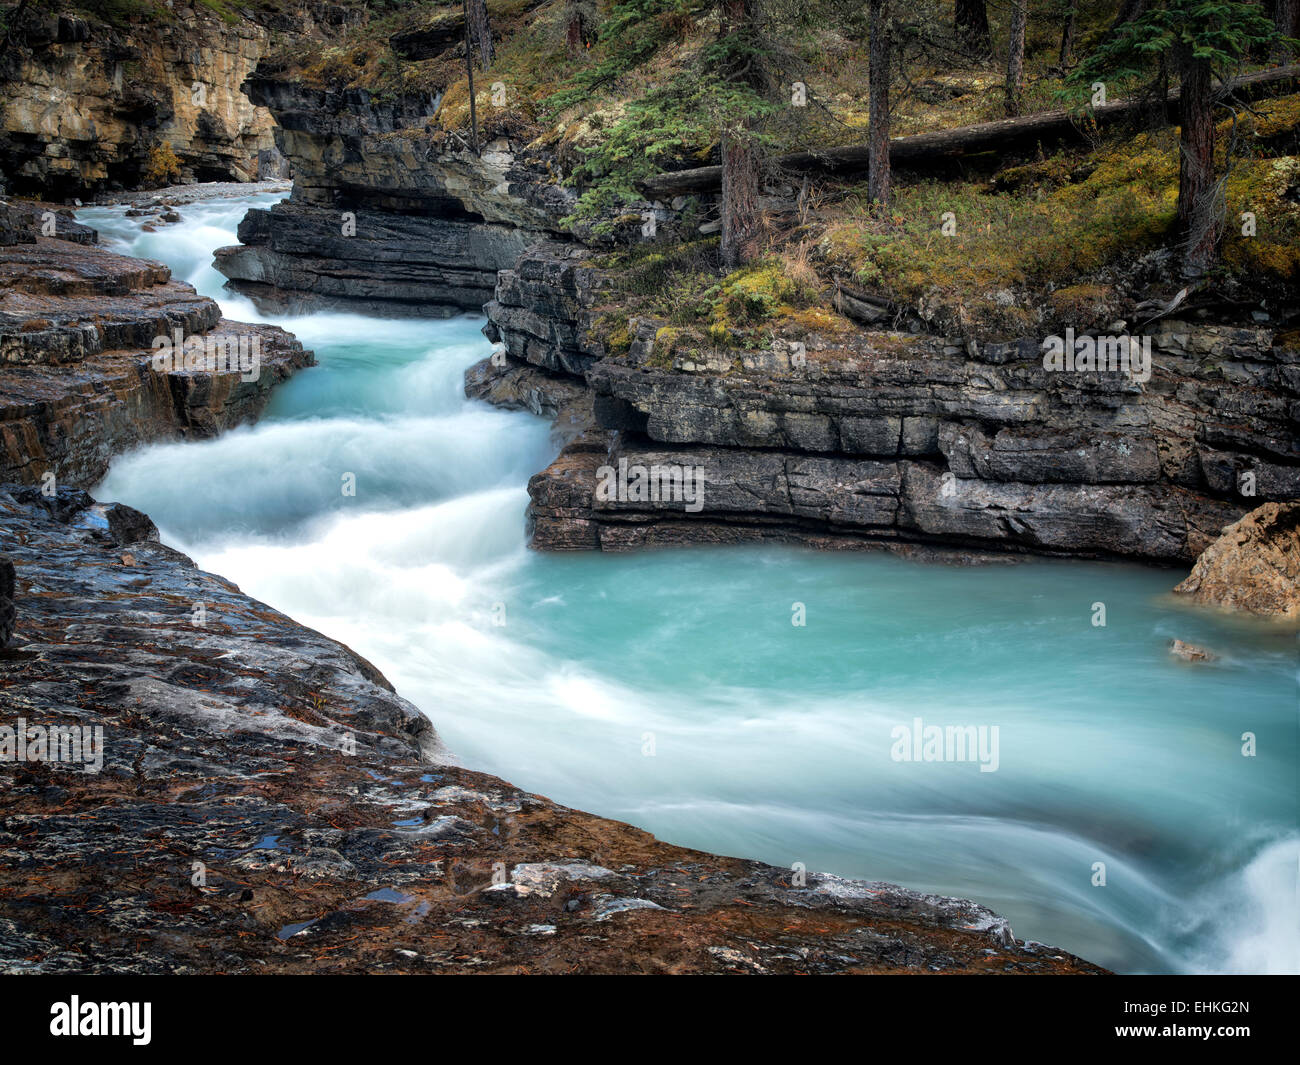 Stream In Beauty Creek. Le Parc National Jasper, Alberta Canada Photo Stock